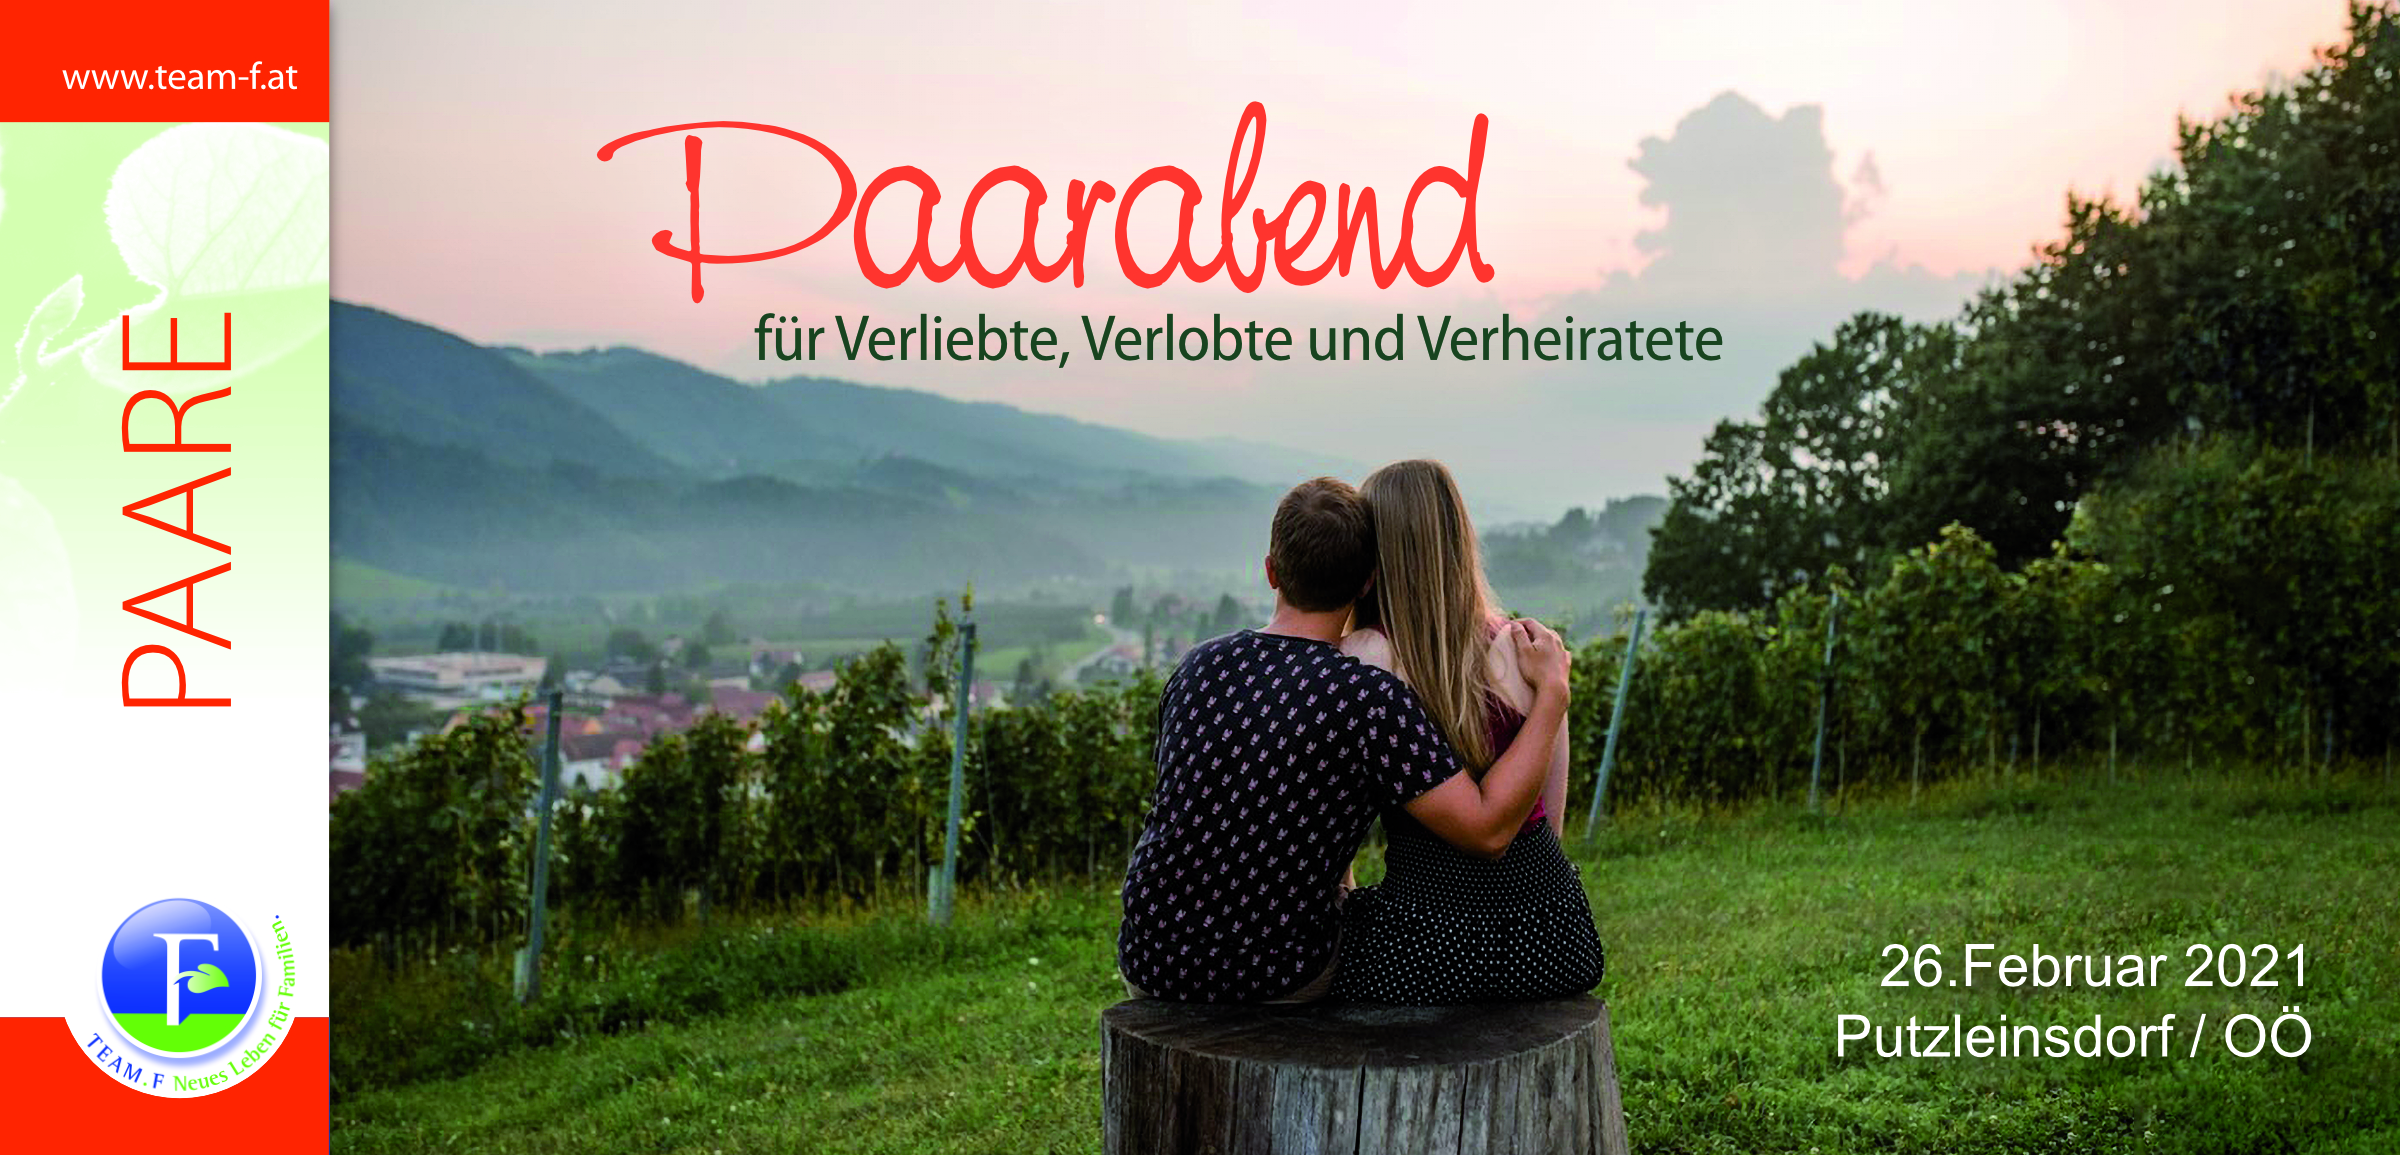 Paarabend Rohrbach